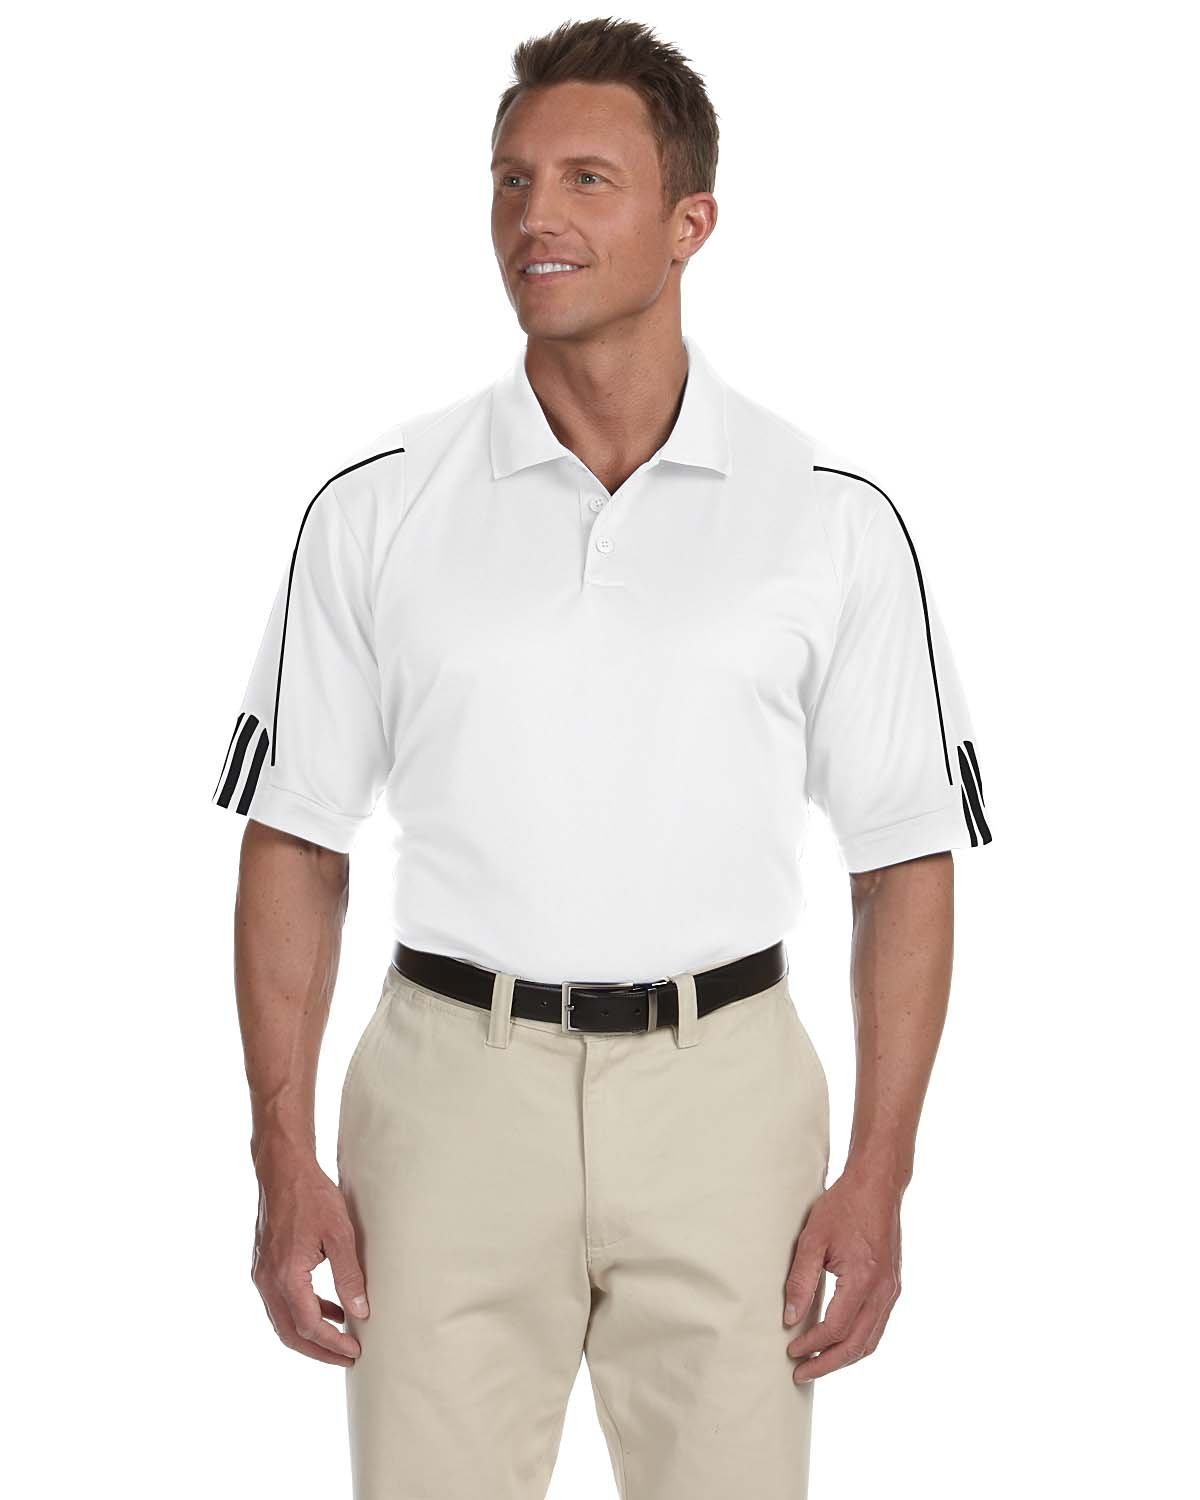 Adidas Men's 3-Stripes Contrast Piping Polo